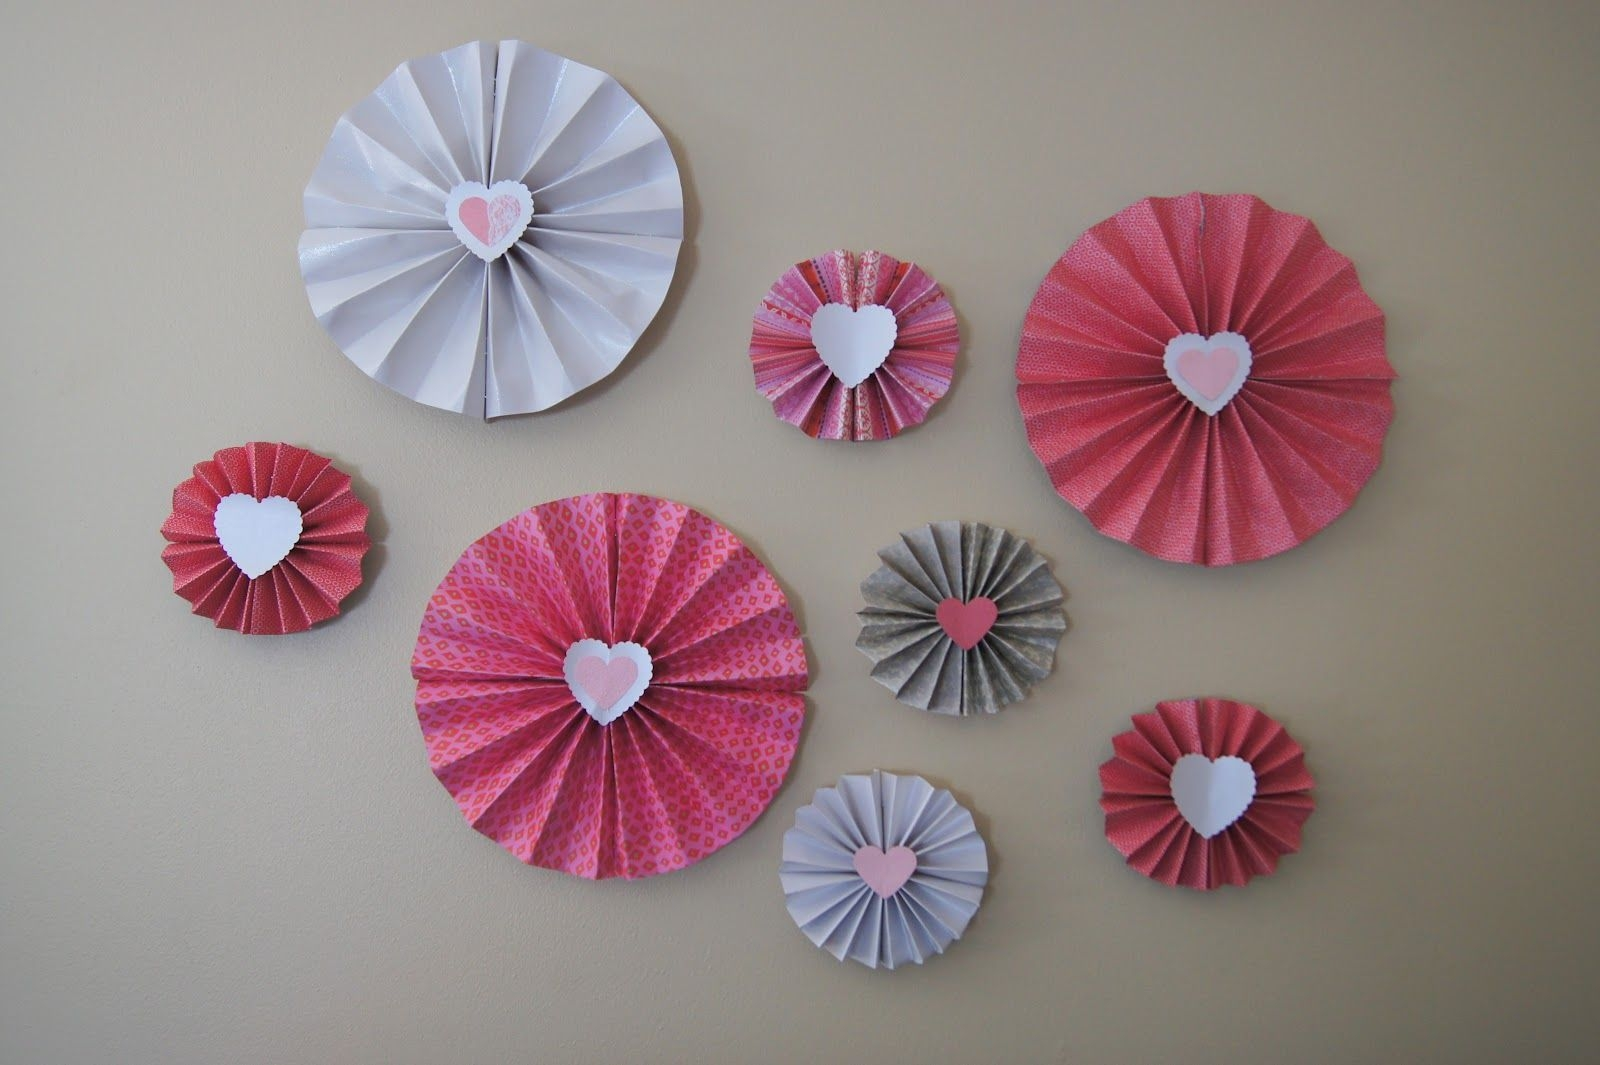 Wonderful Handmade Decorations Ideas For Valentines Day 12